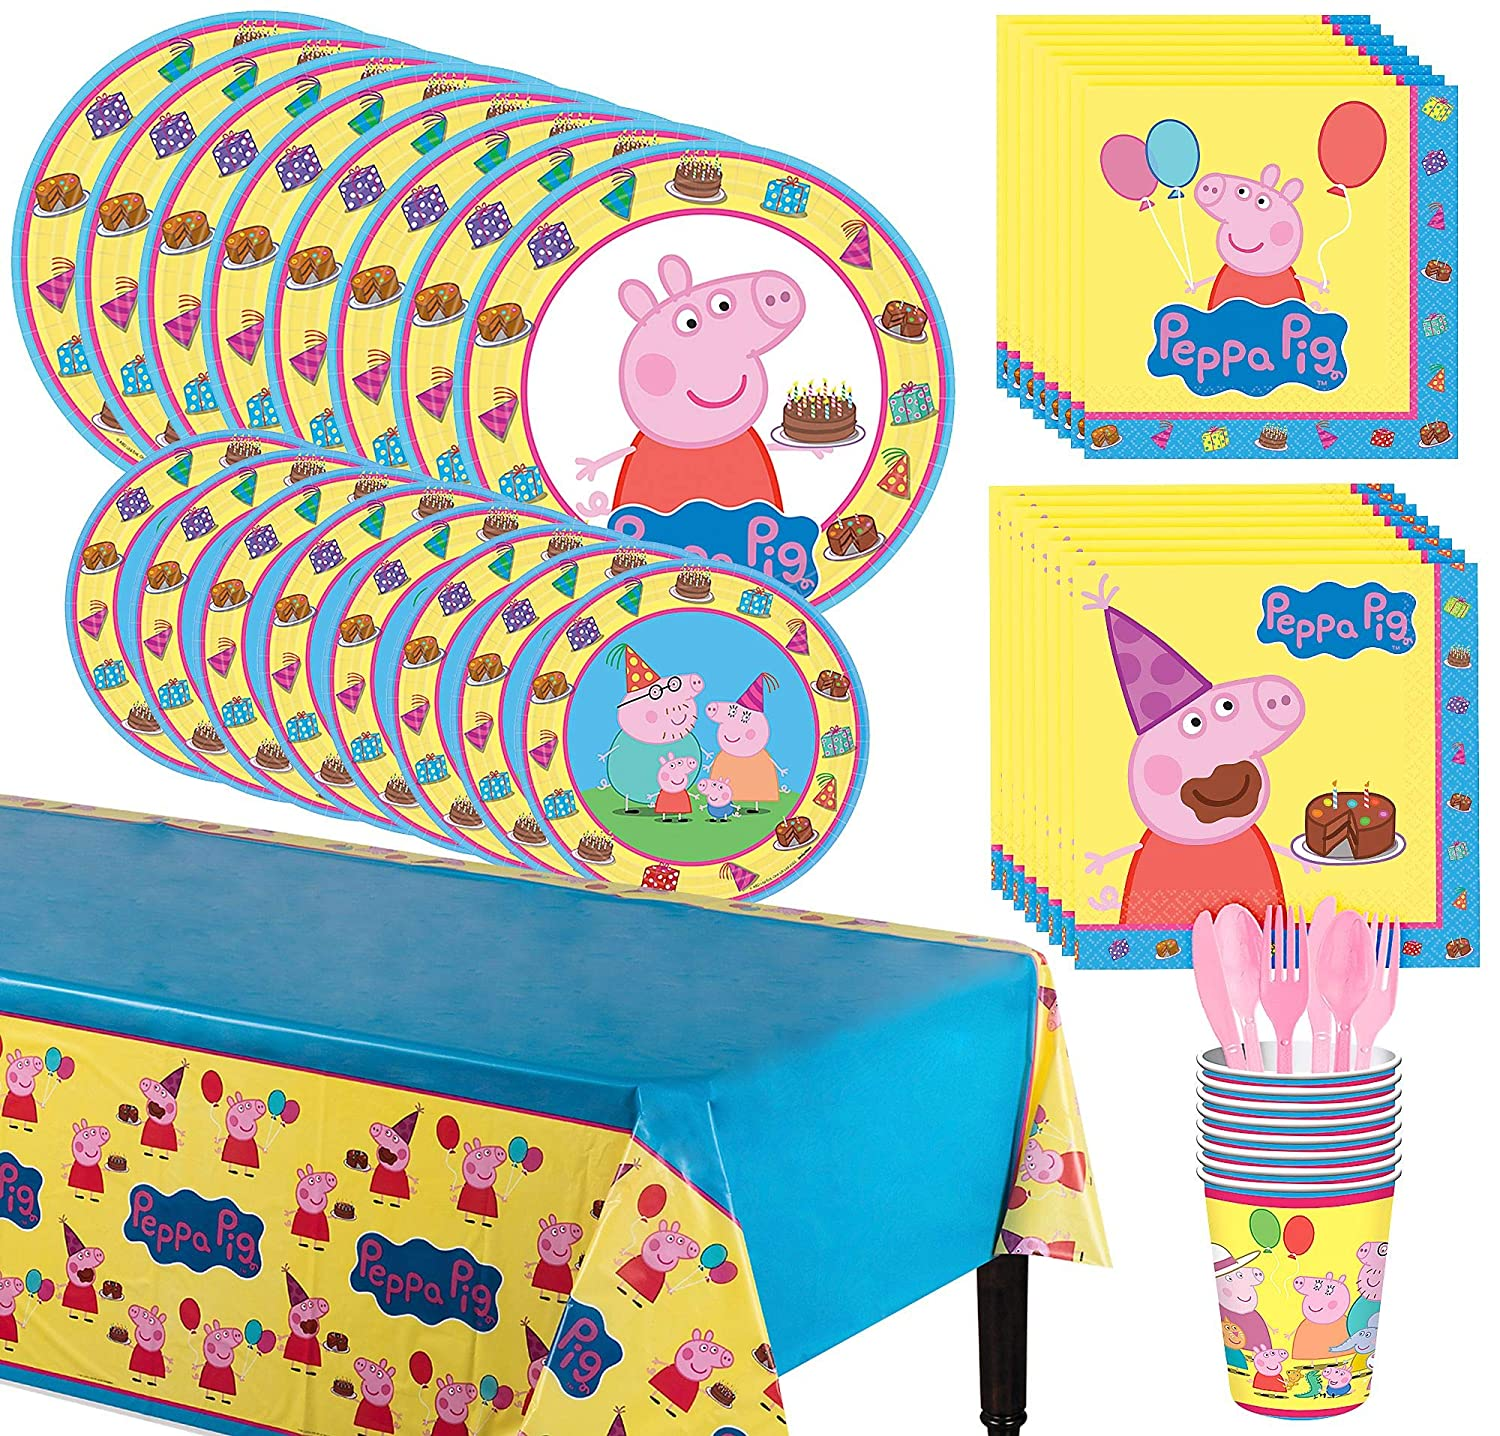 Peppa Pig Party Supply Packs for 8 Guests